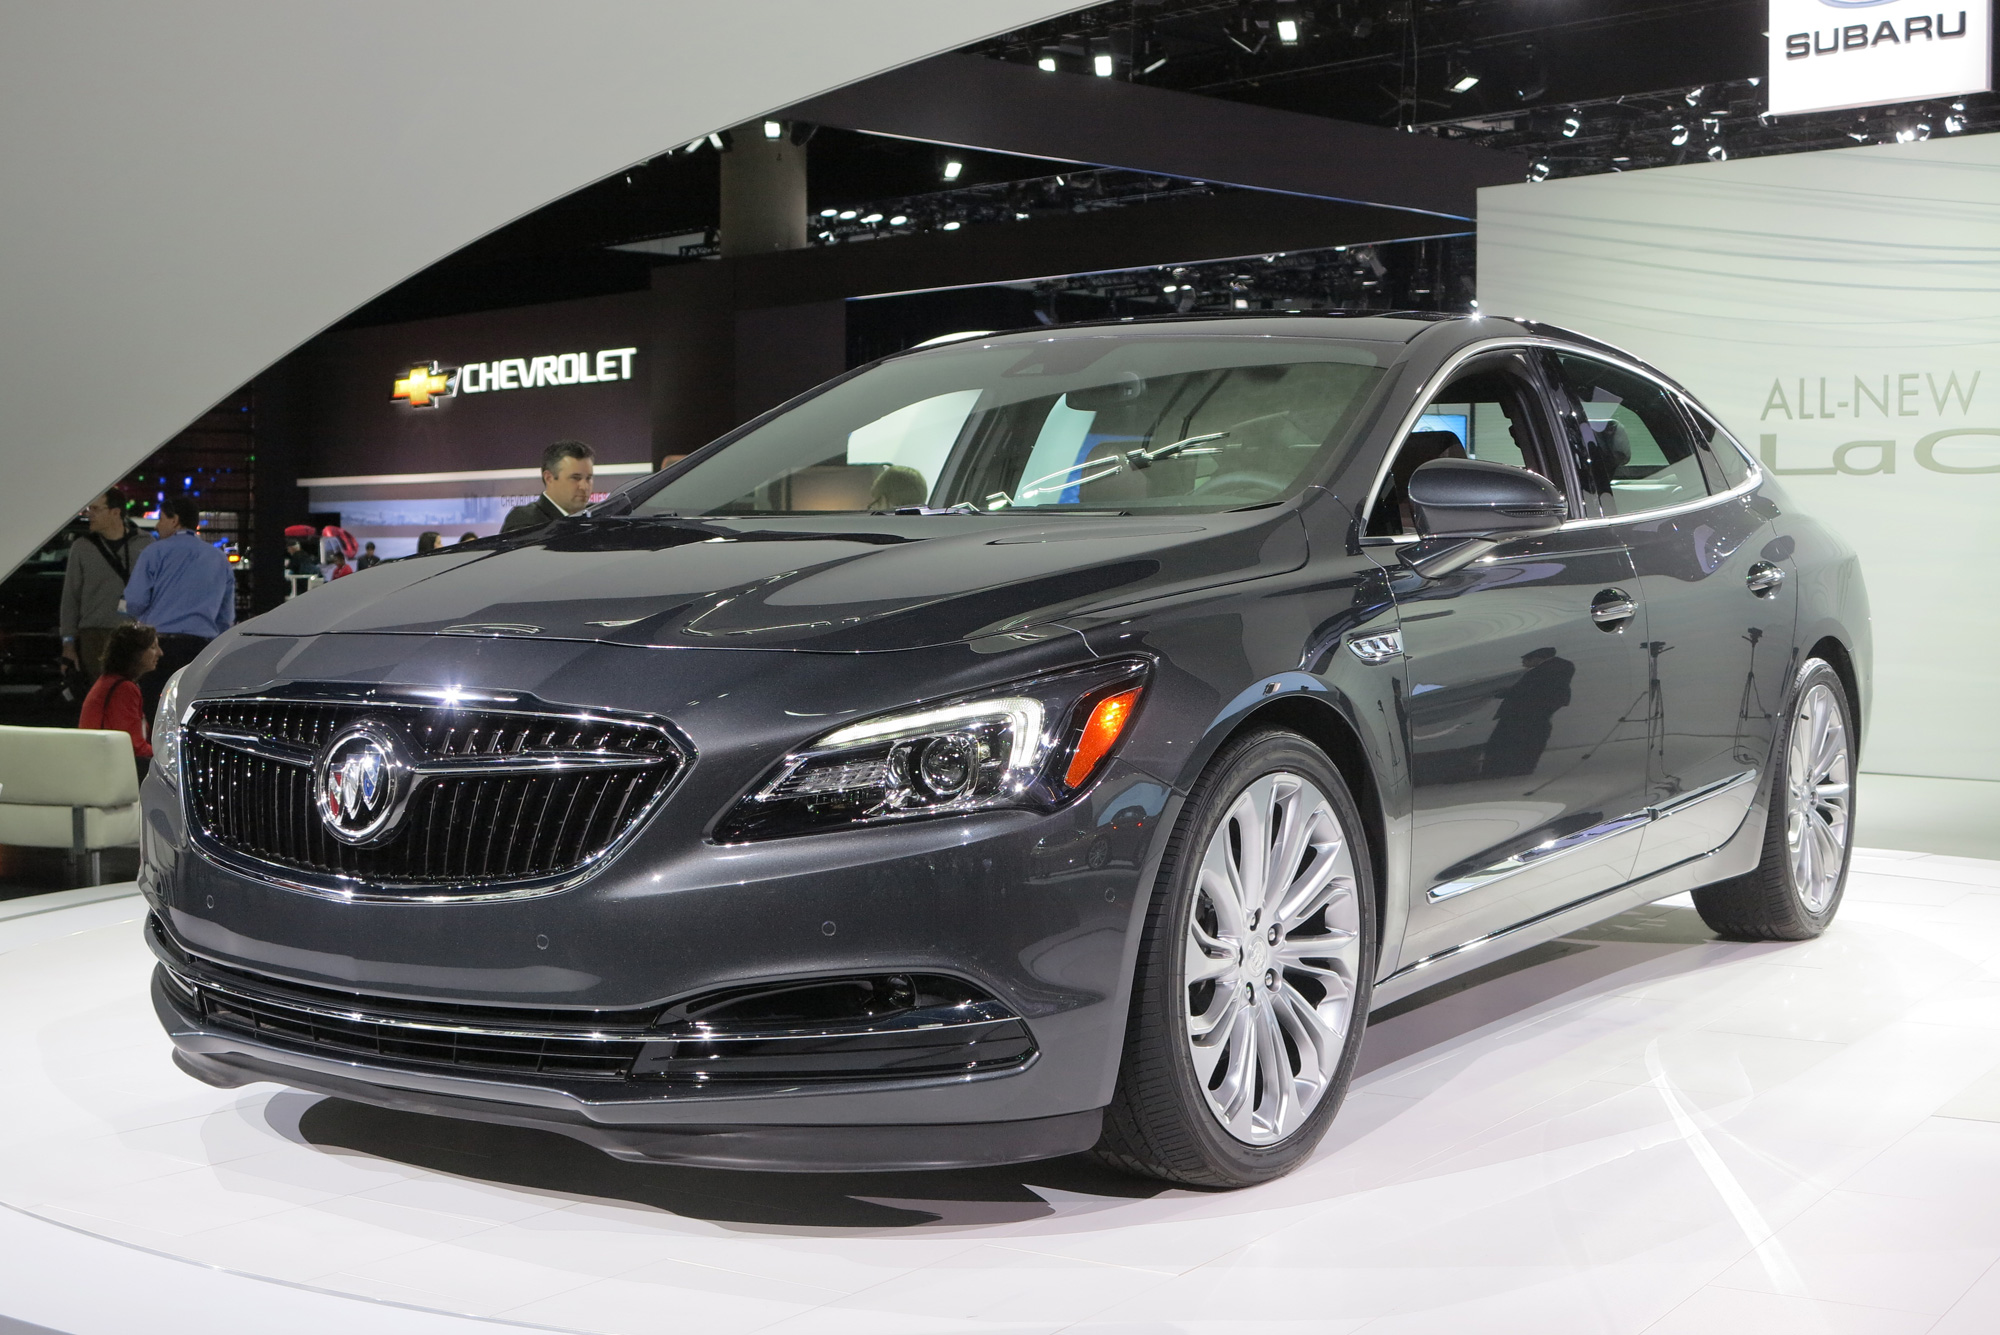 2017 buick lacrosse heading to dealerships in july priced at 32 990 news. Black Bedroom Furniture Sets. Home Design Ideas